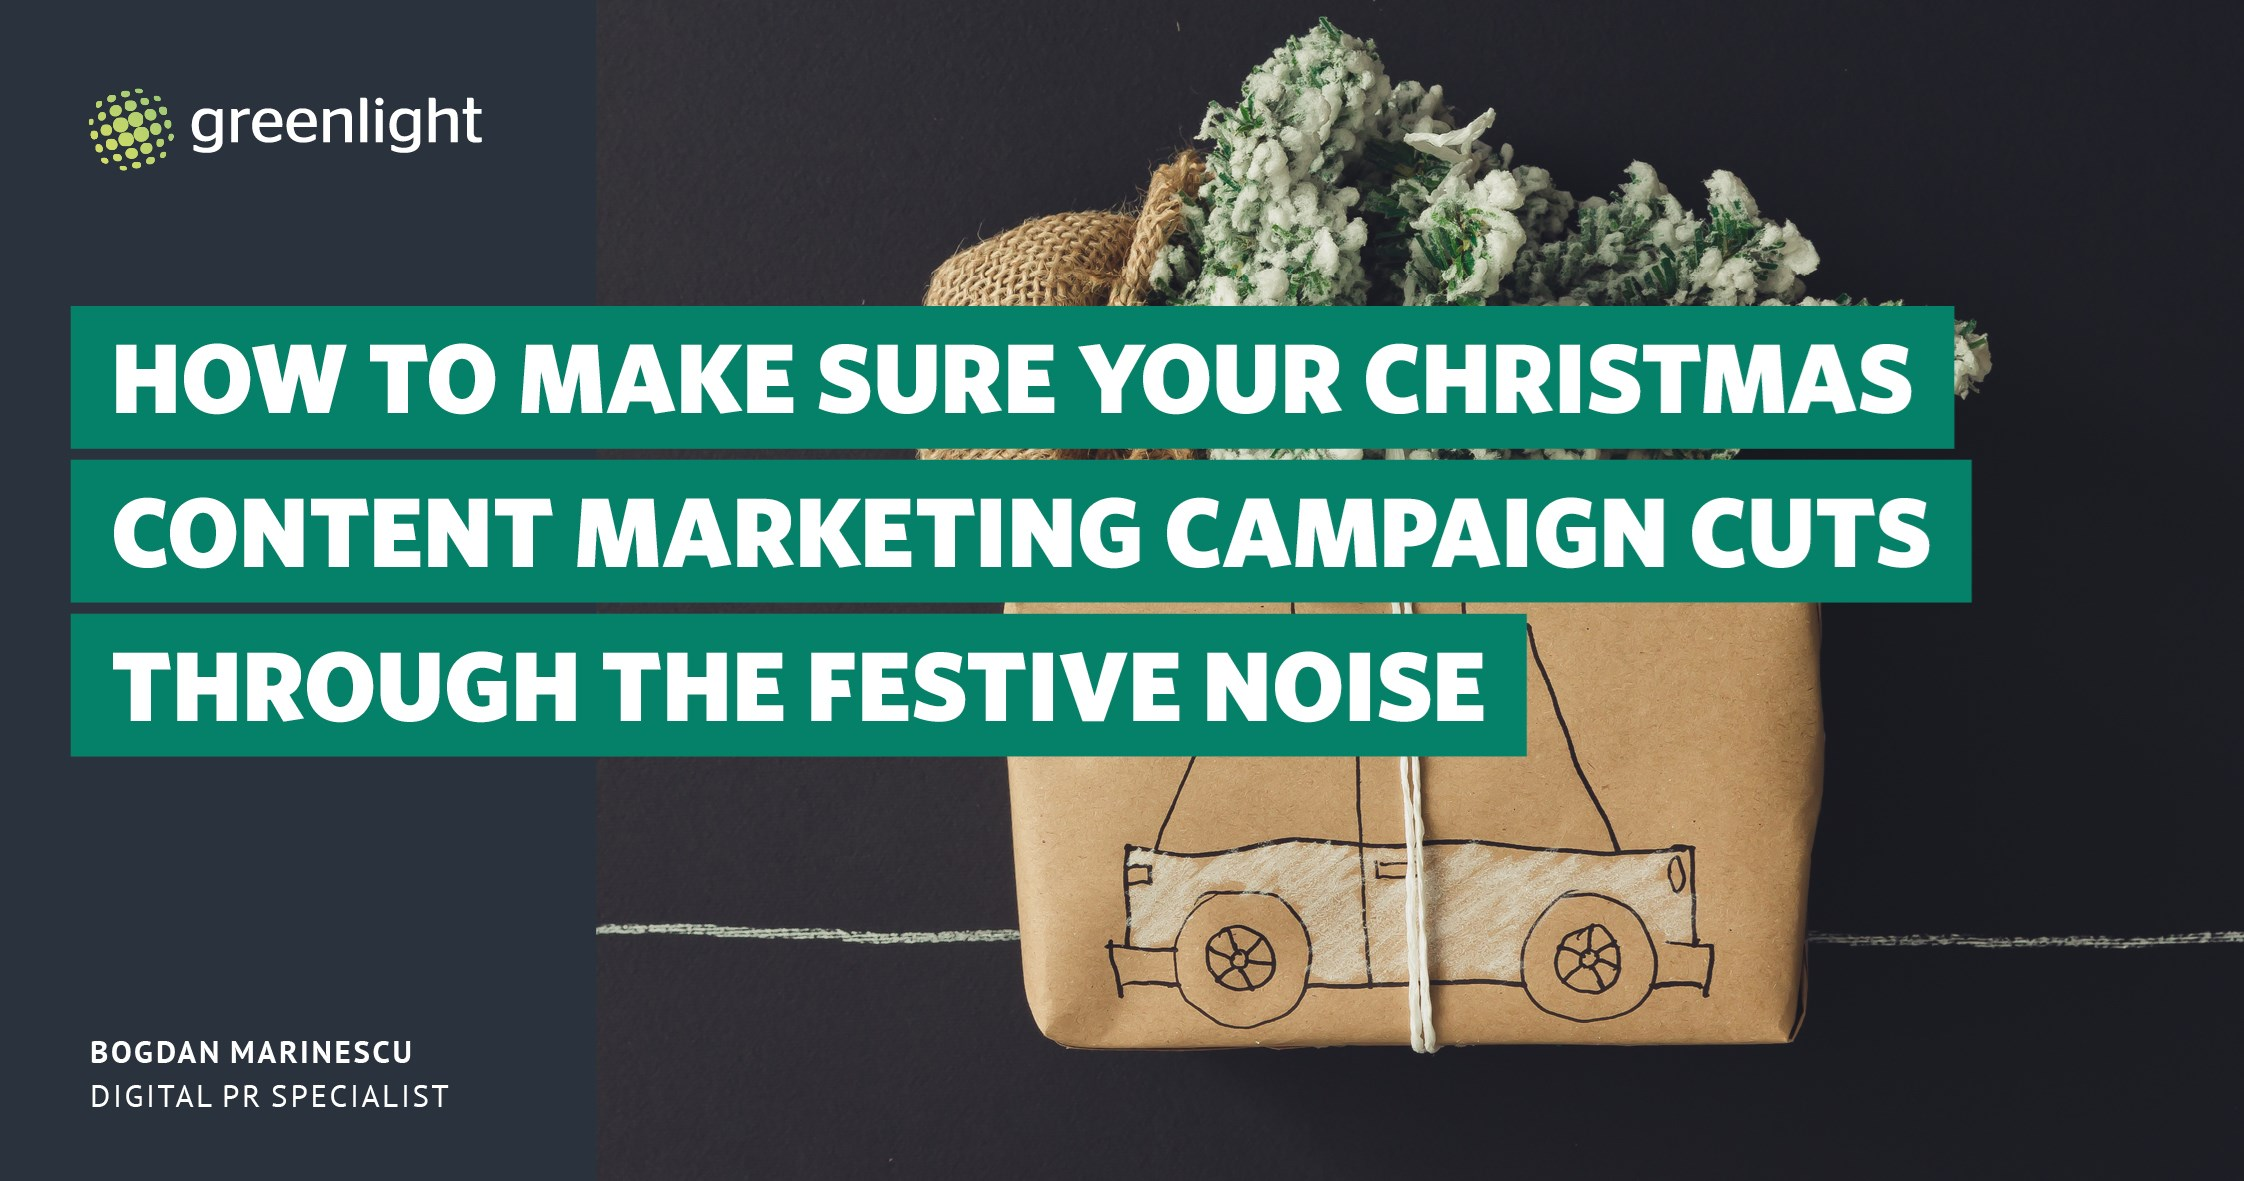 How To Make Sure Your Christmas Content Marketing Campaign Cuts Through The Festive Noise